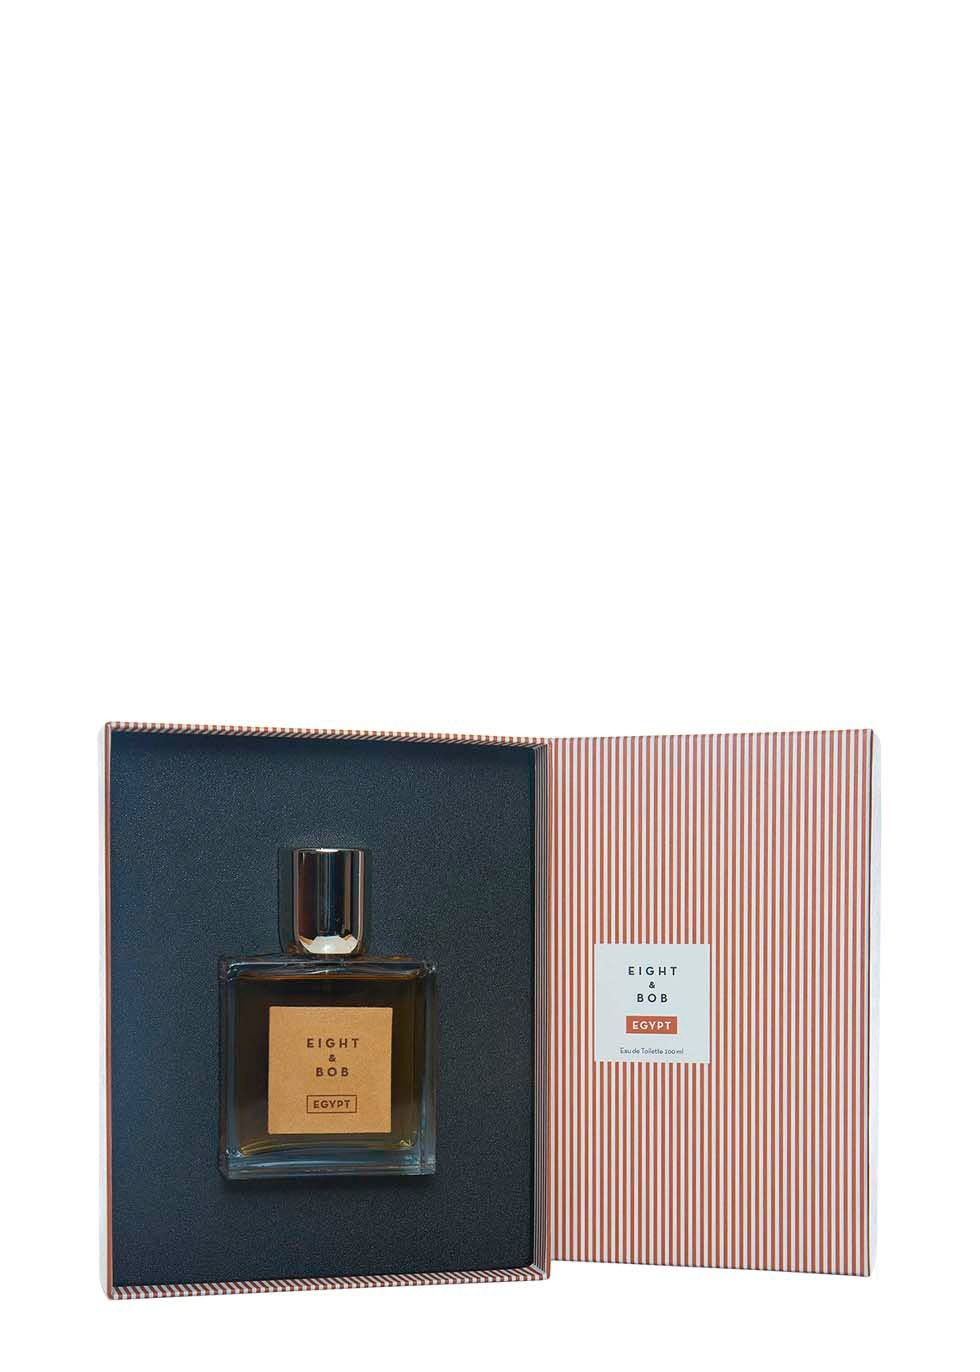 Egypt Eau De Parfam 100ml - Eight & Bob